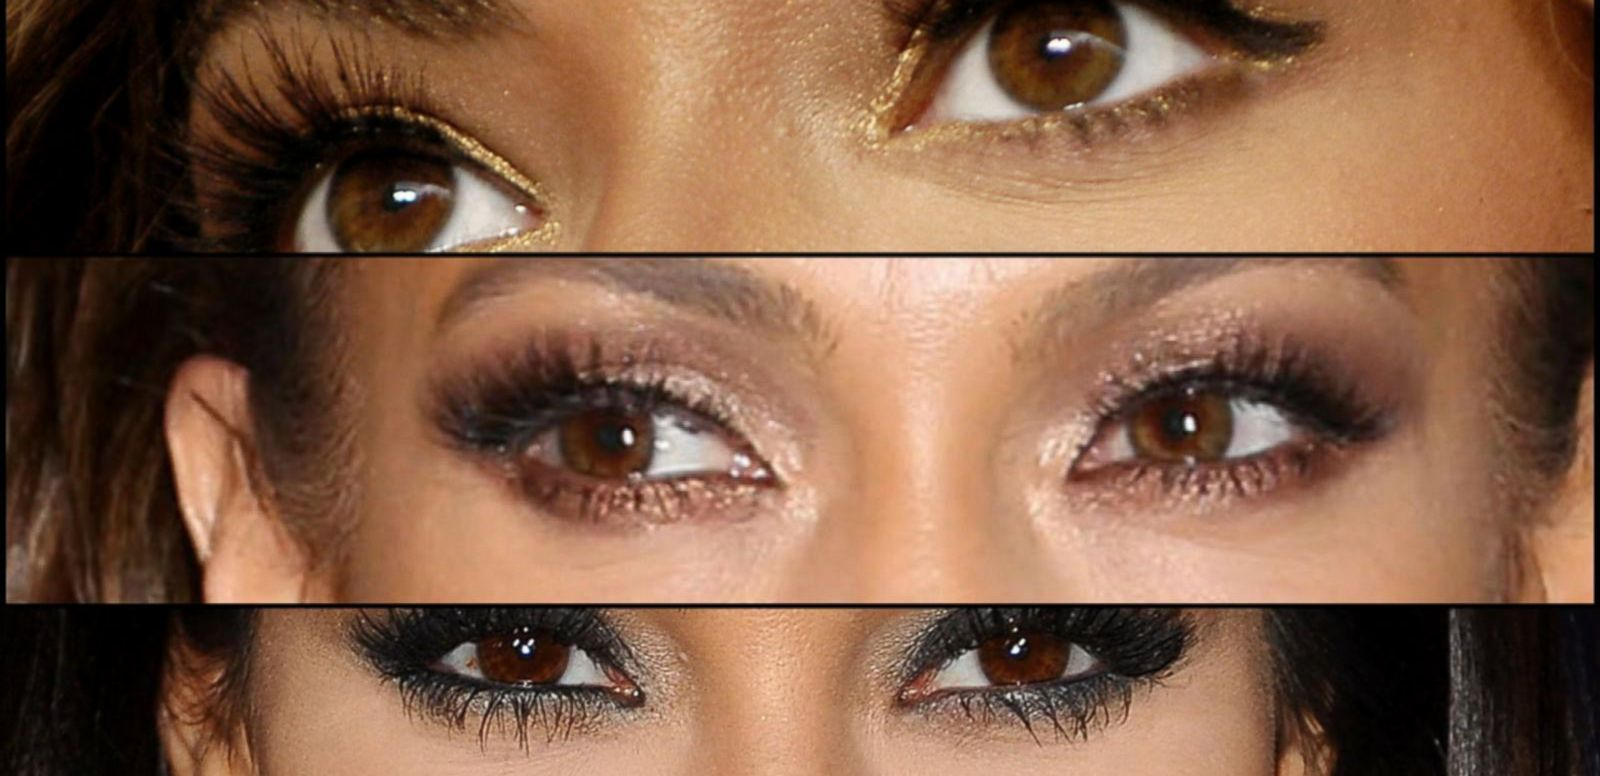 How Safe are Your Eyelash Extensions? - ABC News